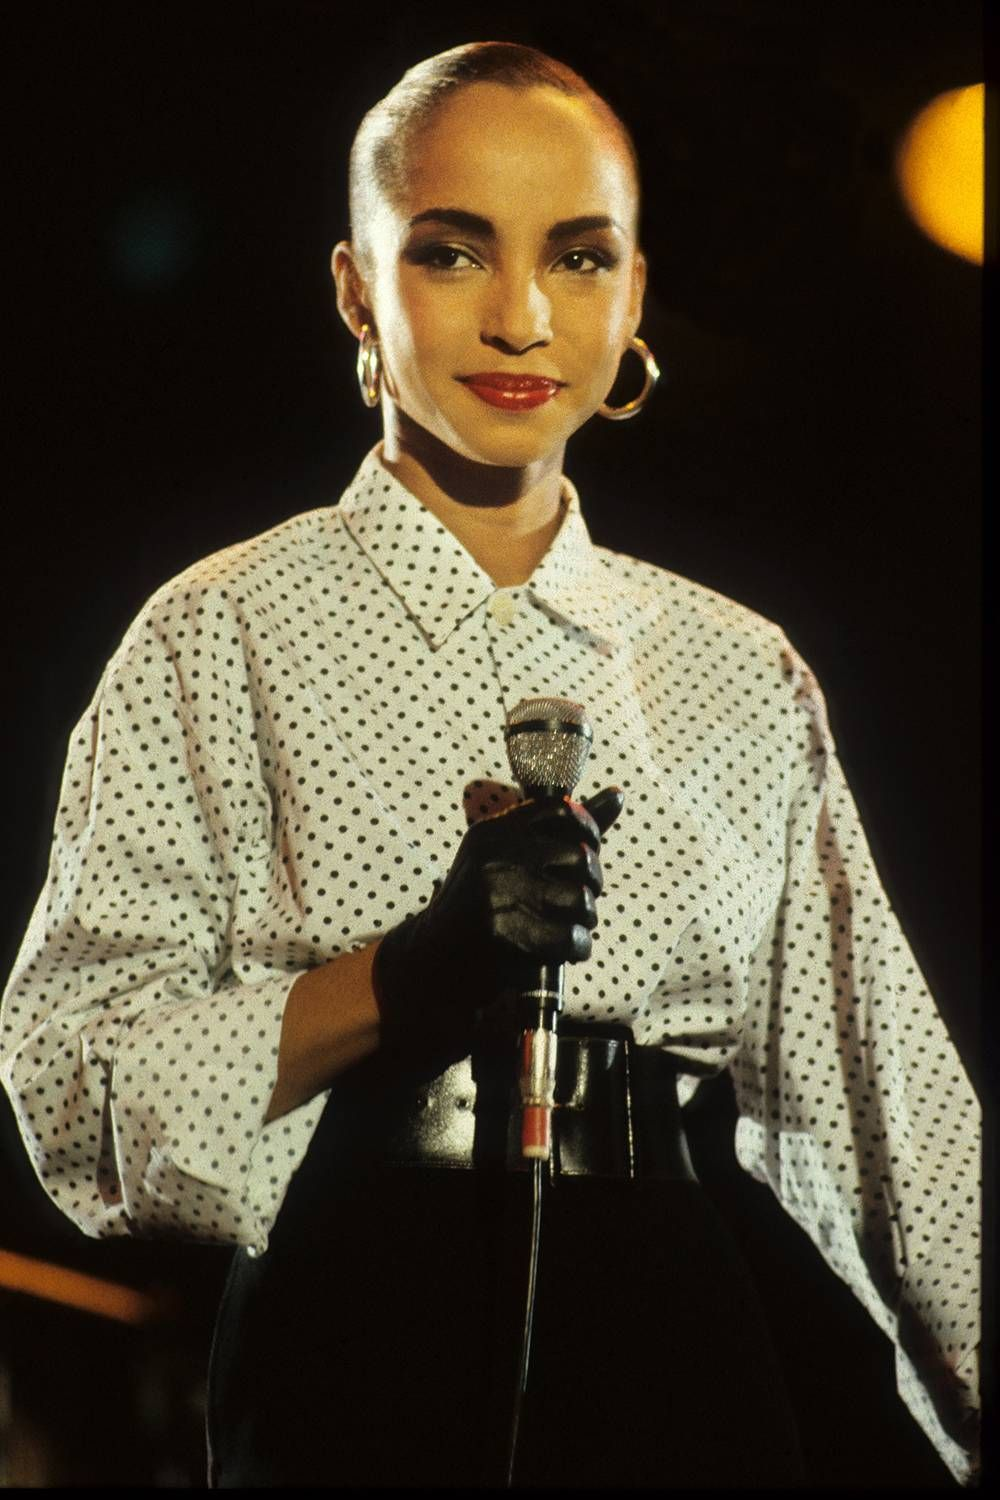 Watch 80s Fashion Is Back—These Were the Most Iconic Looks at the Time video